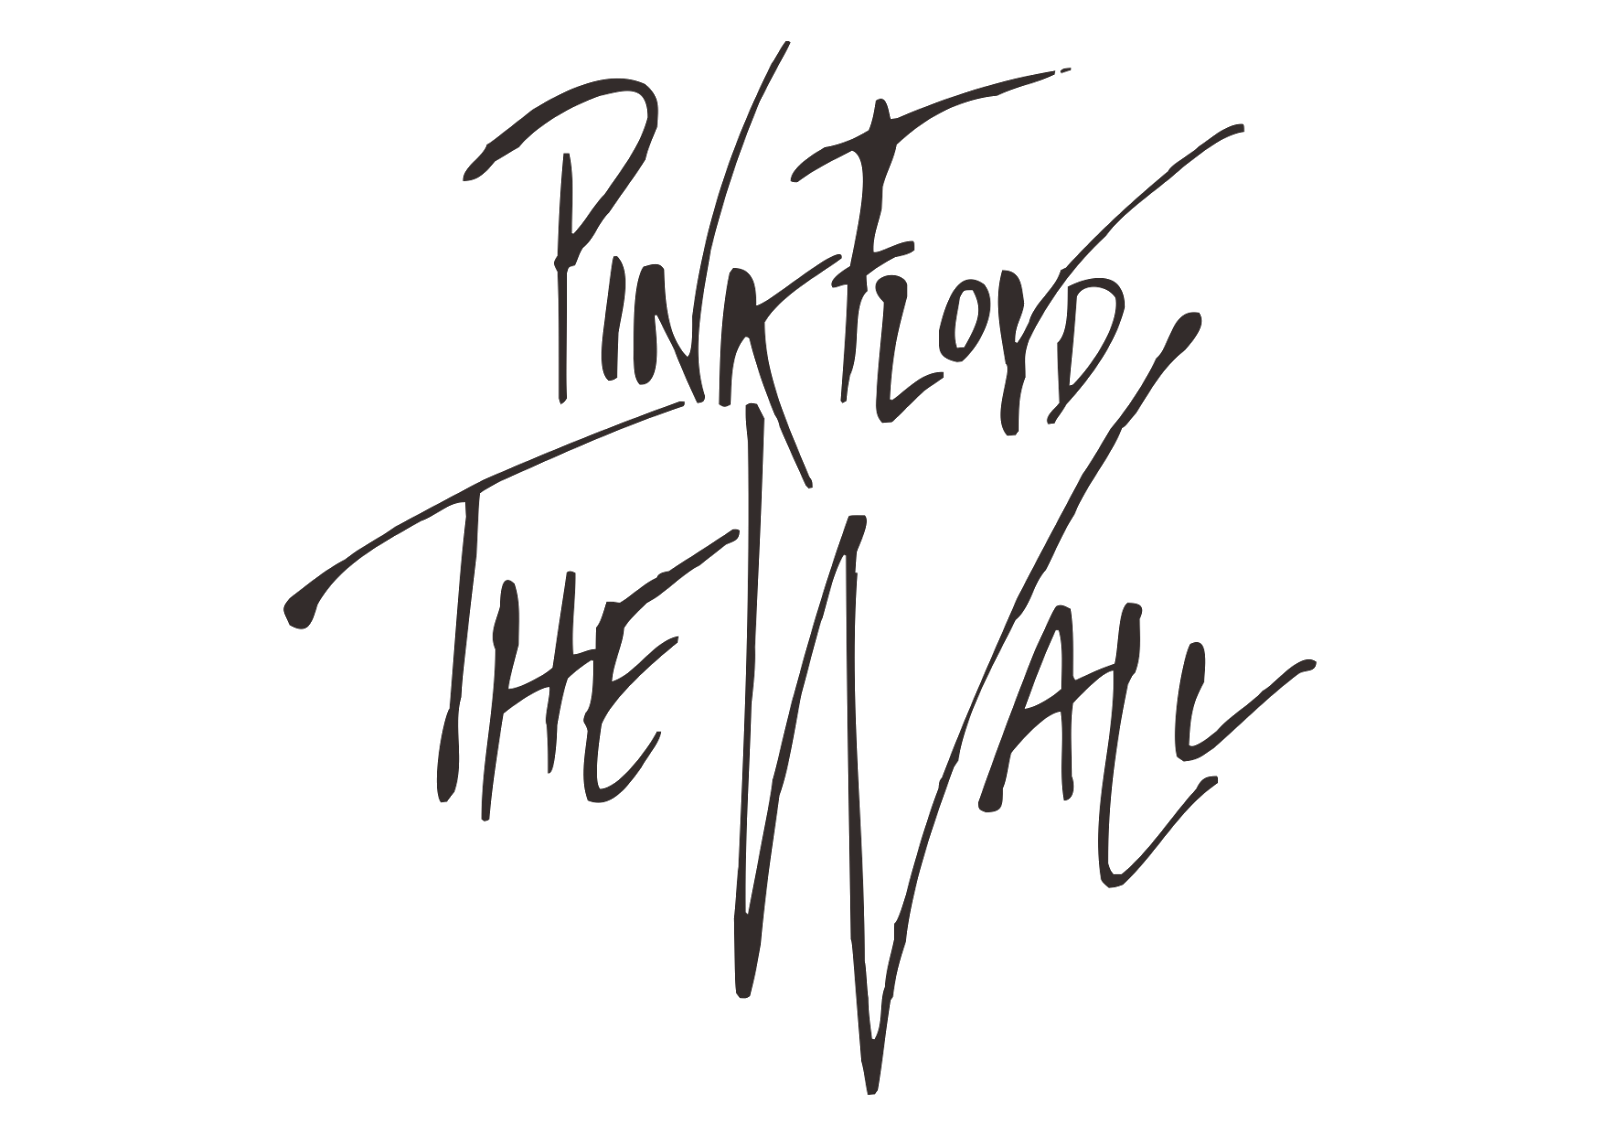 Pink floyd png. The wall logo photos